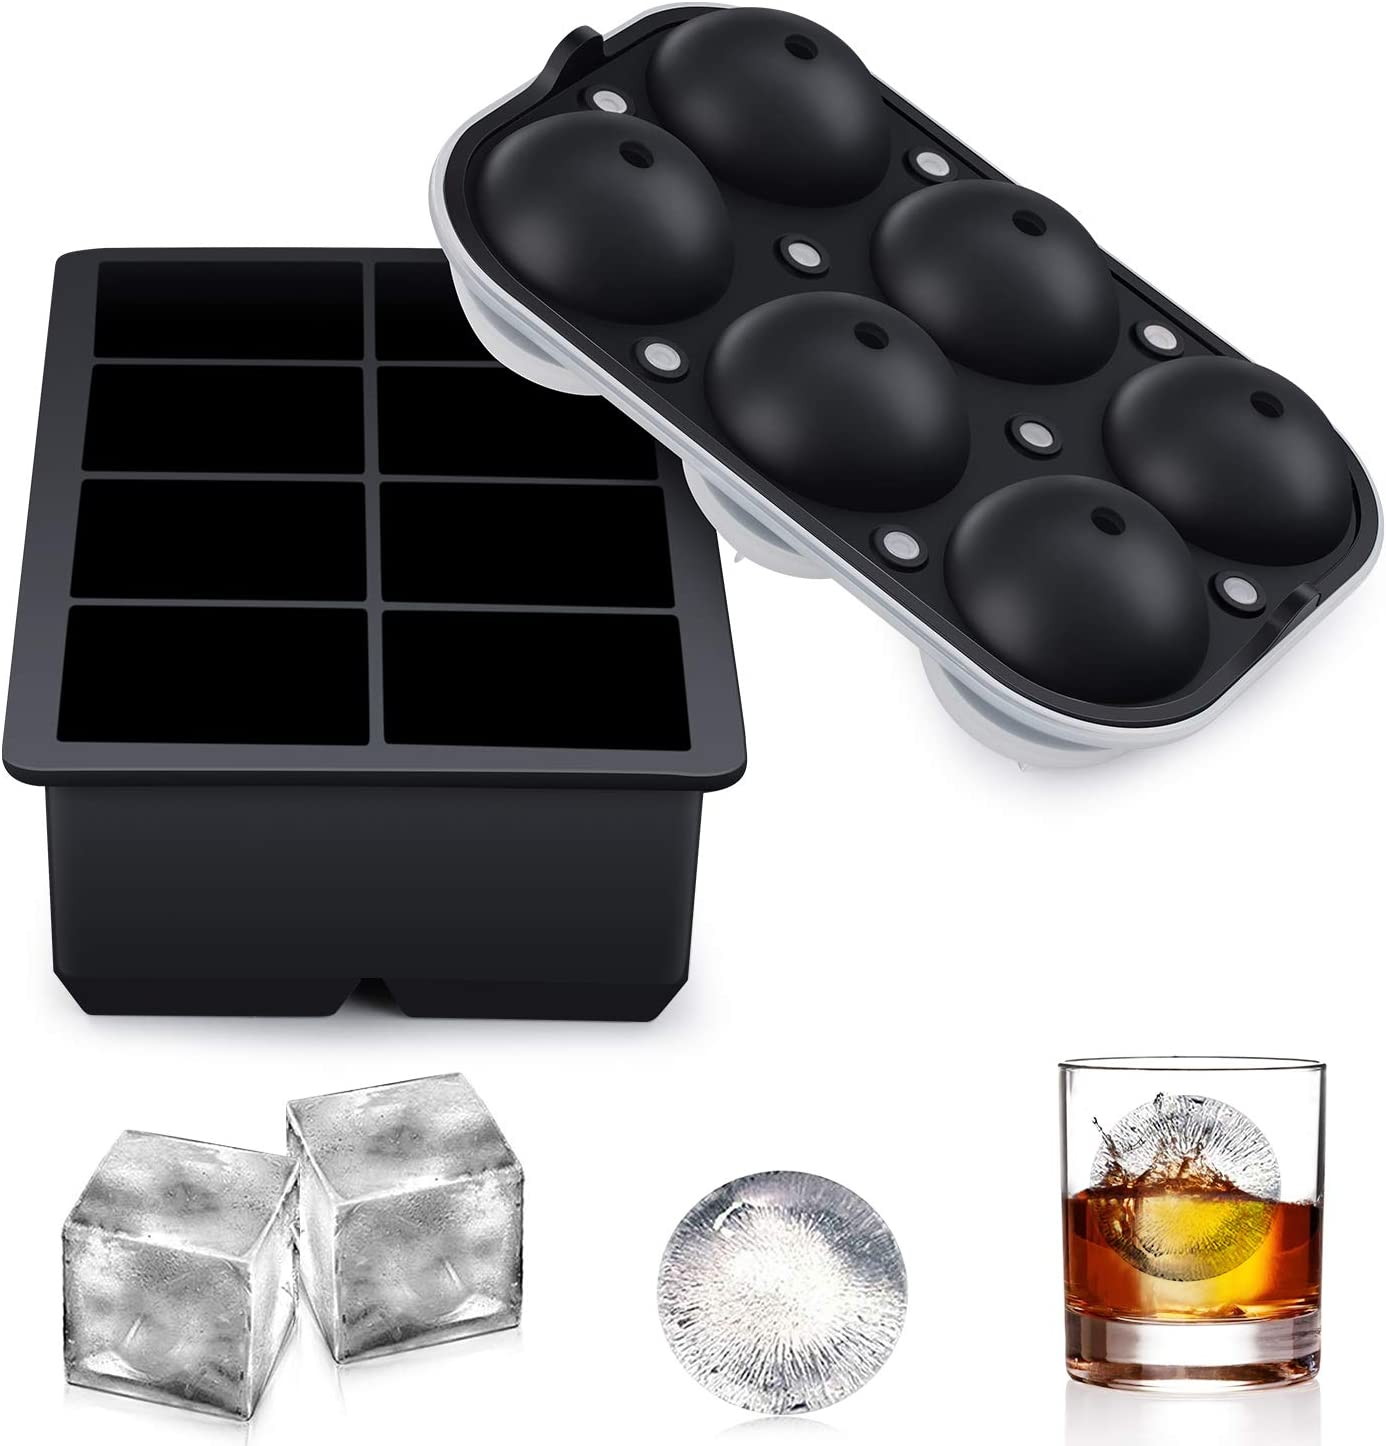 DoeDoe Ice Cube Trays Silicone Set of 2, Upgrade Sphere Ice Ball Maker with Lid and Large Square Ice Cube Molds for Whiskey, Reusable and BPA Free Ice Cube Tray Set